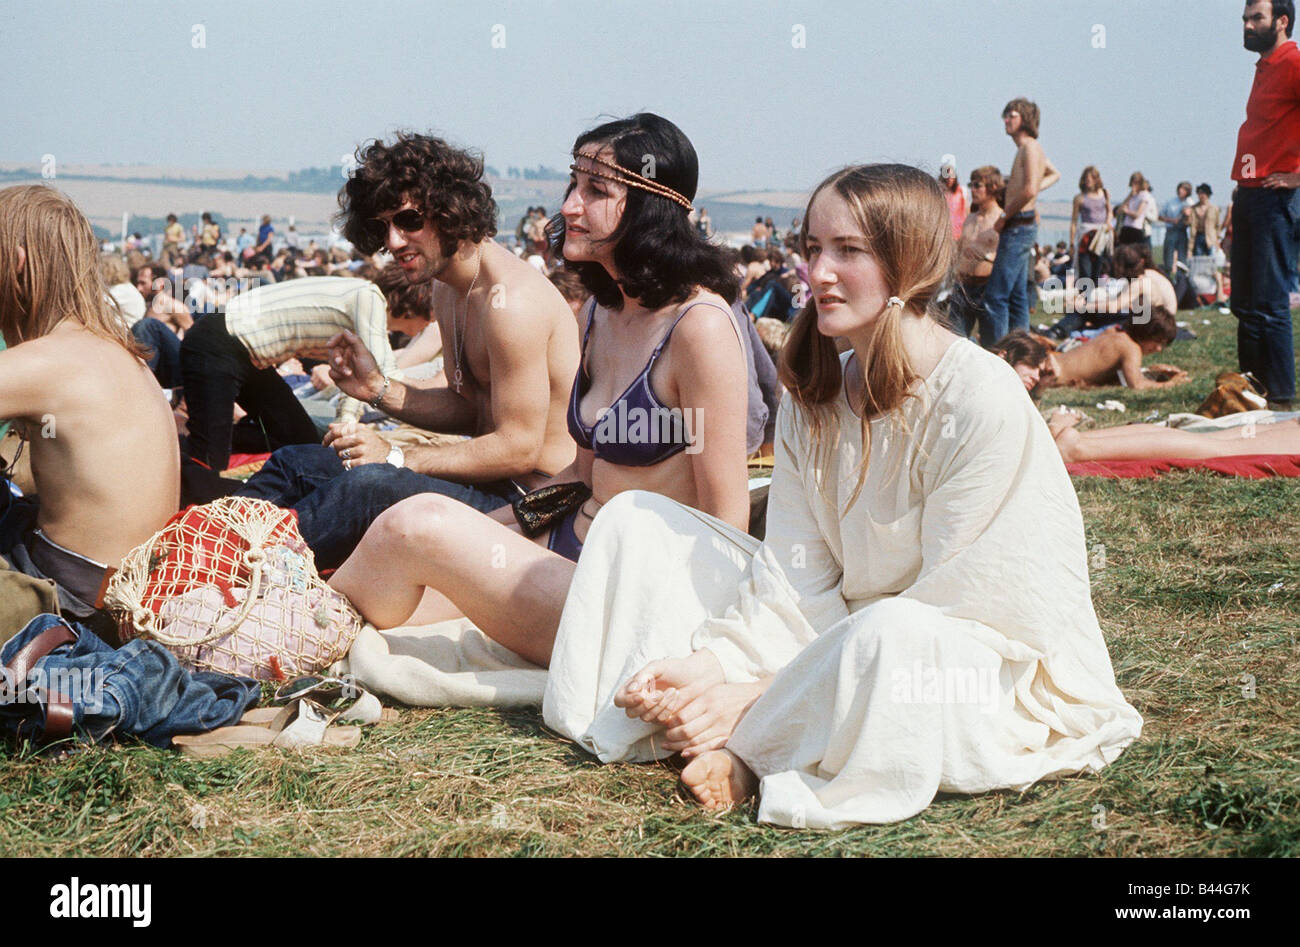 People sitting on grass at Isle of Wight Festival Hippies flower power Local Caption relaxedimages - Stock Image